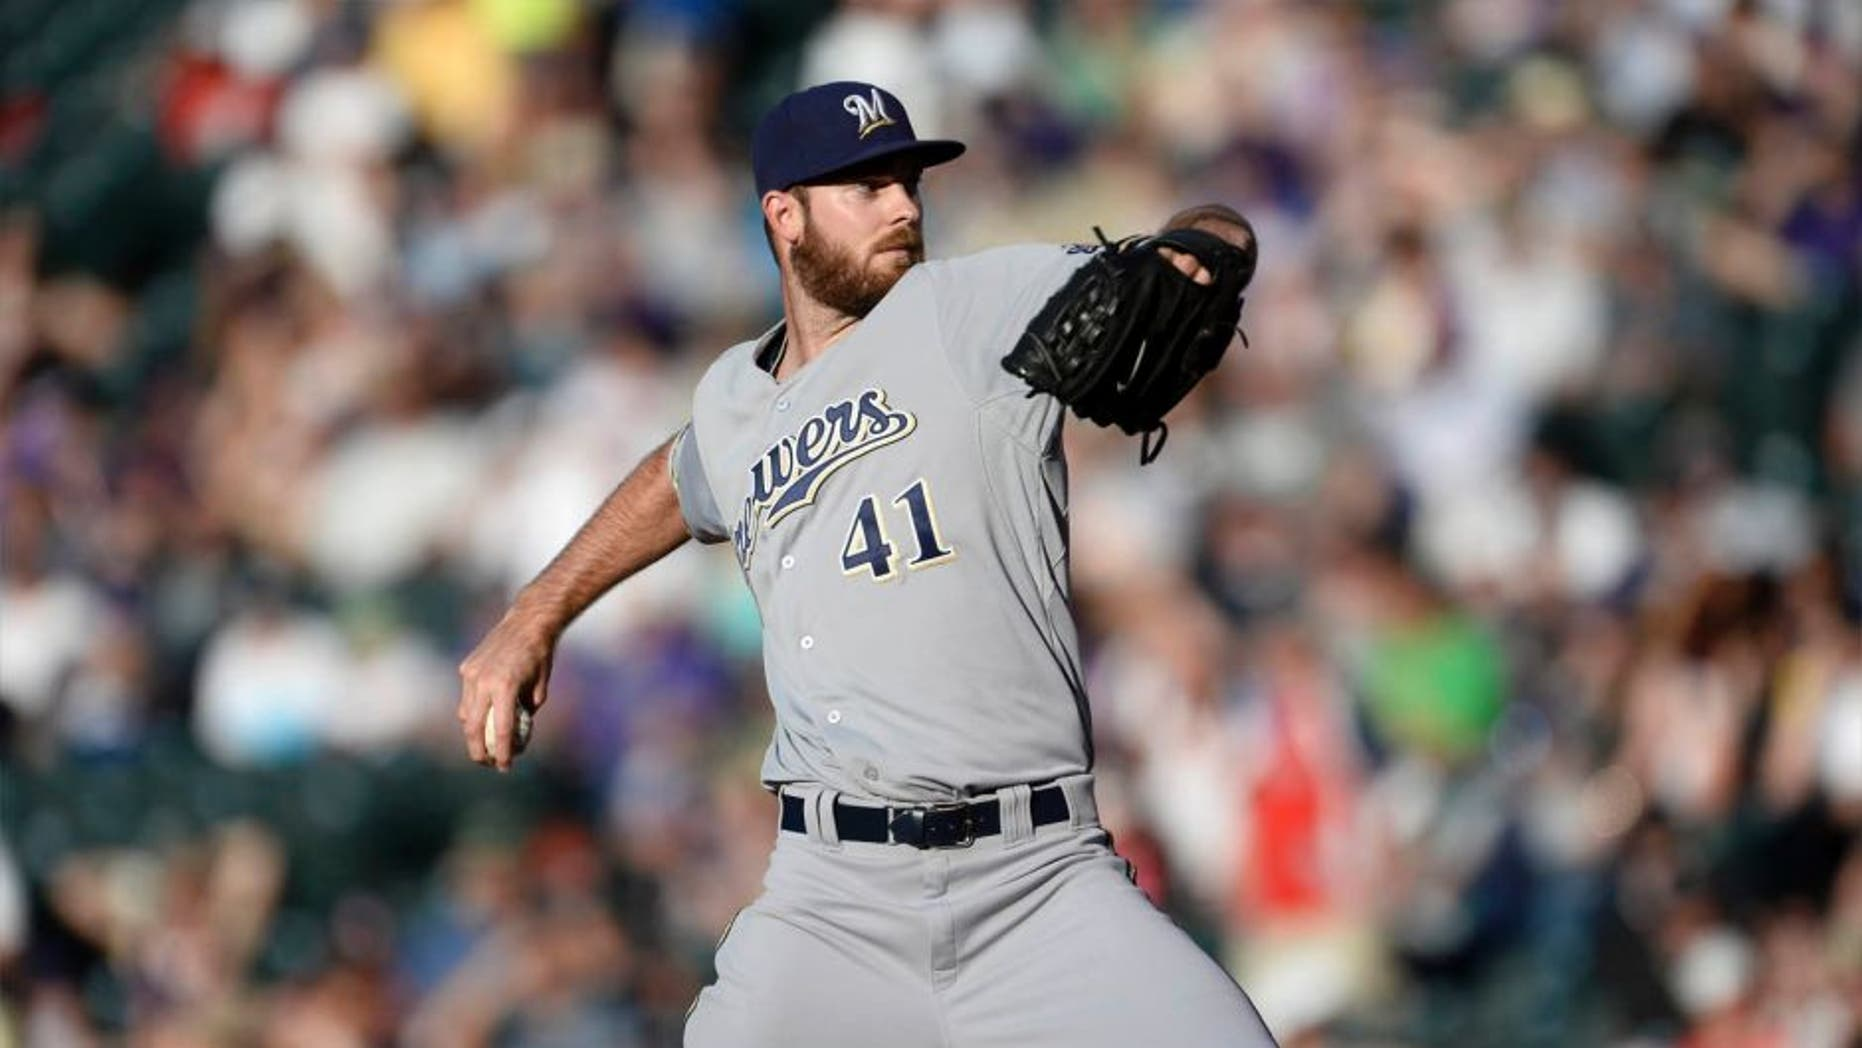 Jun 19, 2015; Denver, CO, USA; Milwaukee Brewers starting pitcher Taylor Jungmann delivers a pitch in the first inning against the Colorado Rockies at Coors Field.